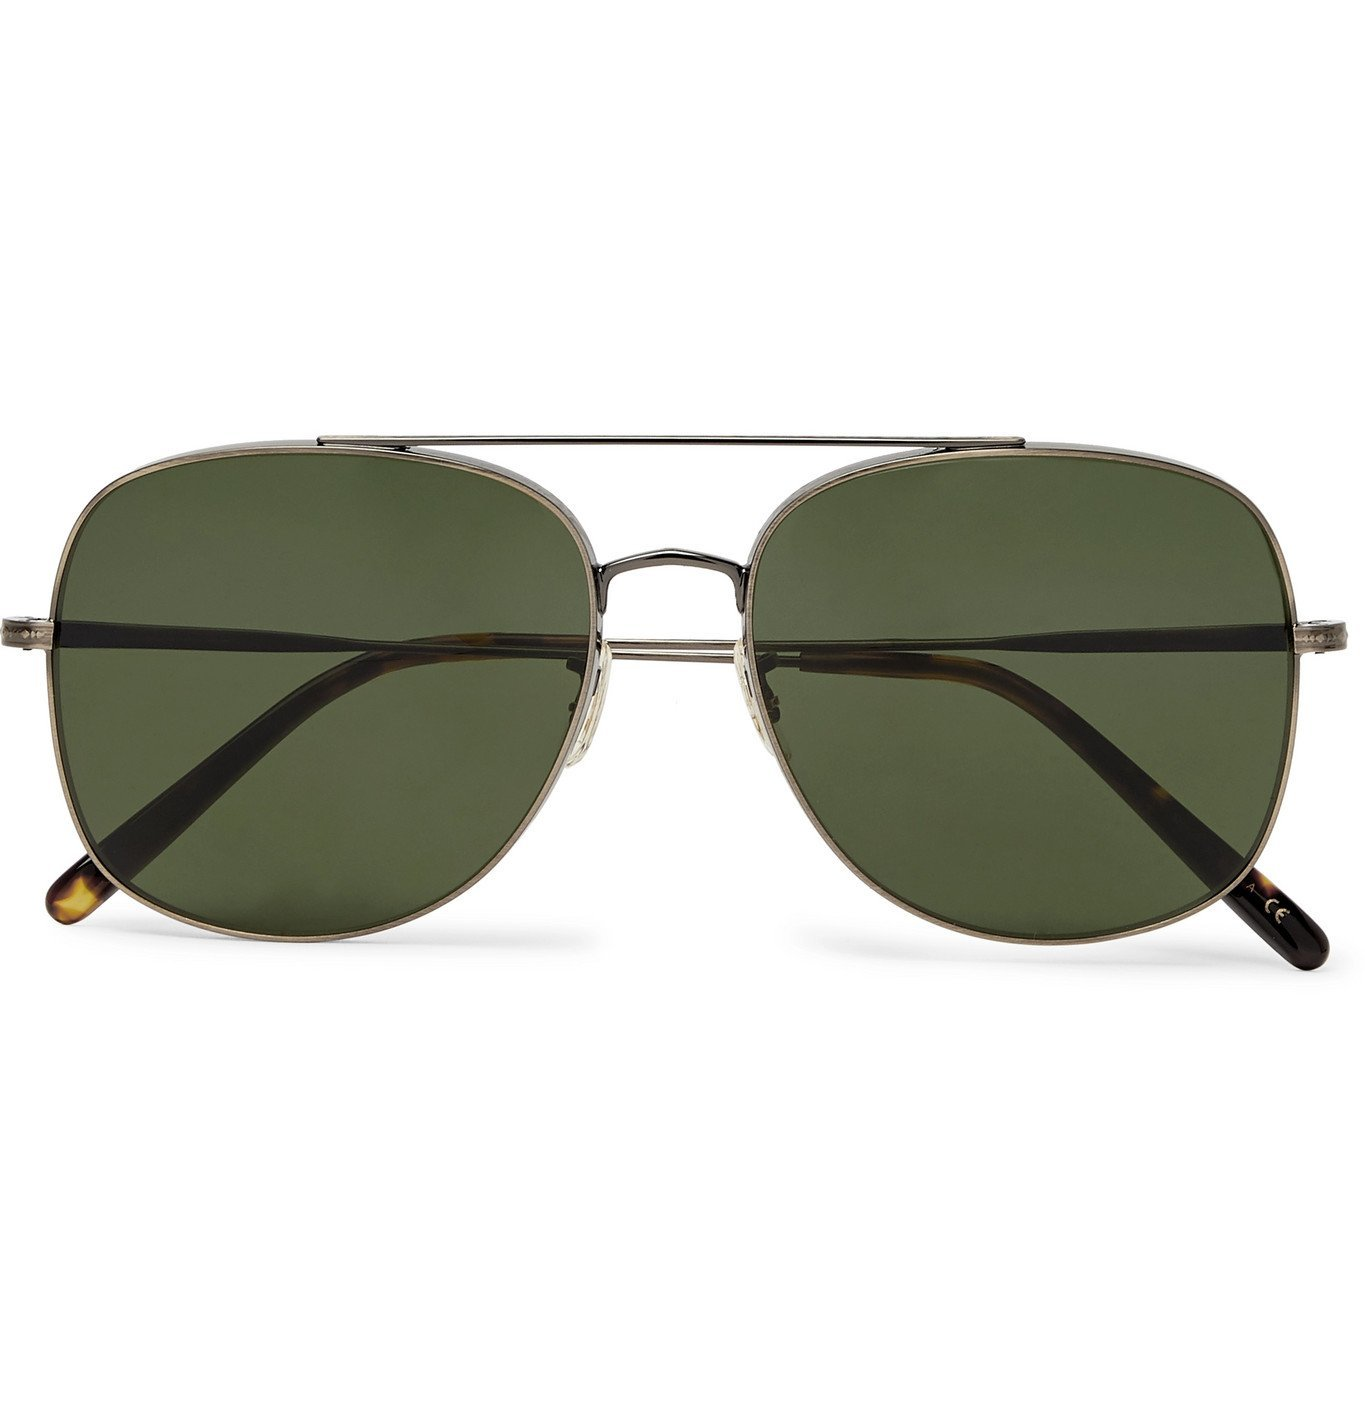 Oliver Peoples - Taron Aviator-Style Gold-Tone Sunglasses - Gold